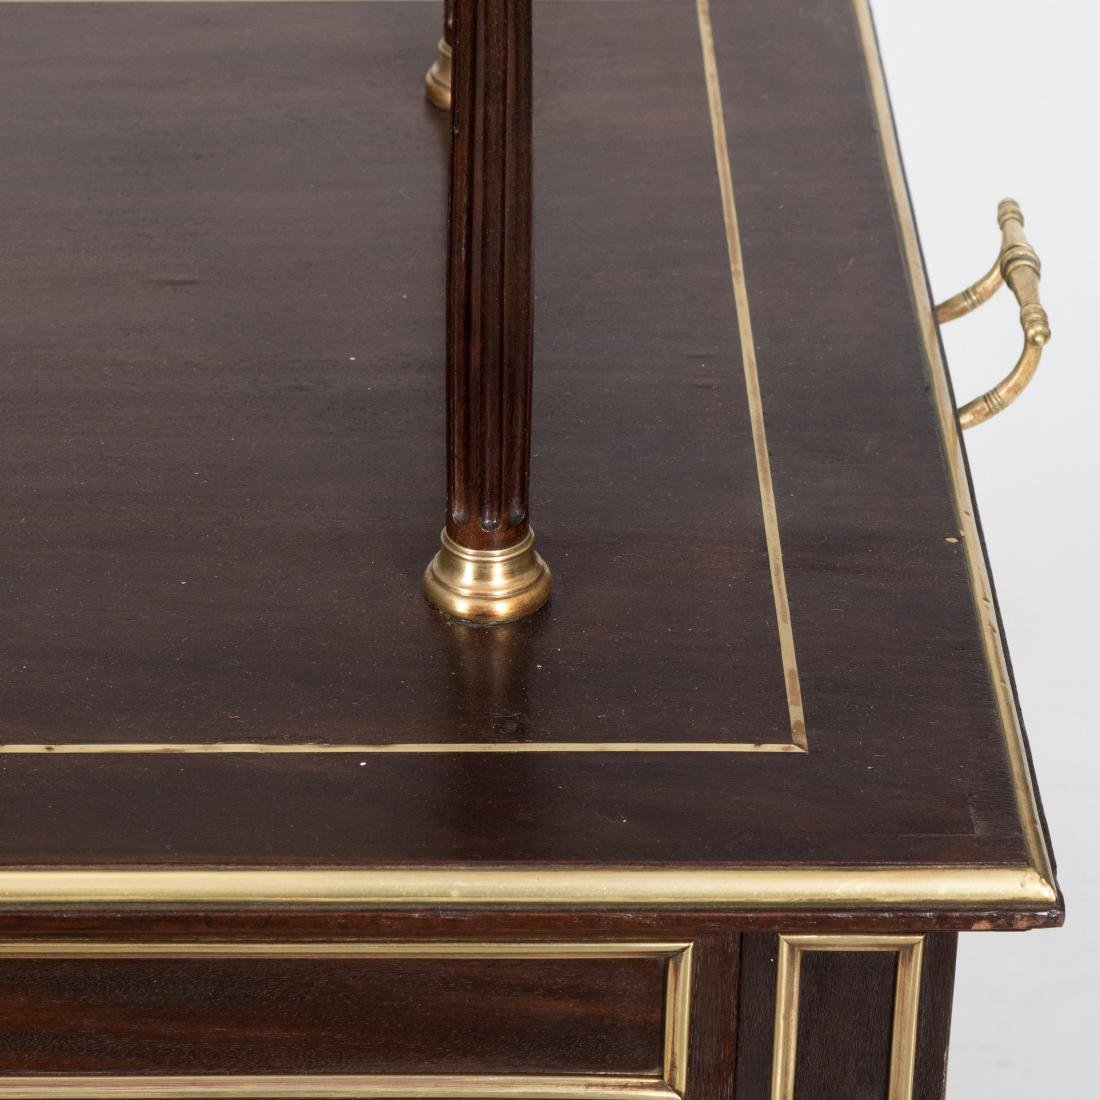 Two Tier French Server with Brass Trim - 2